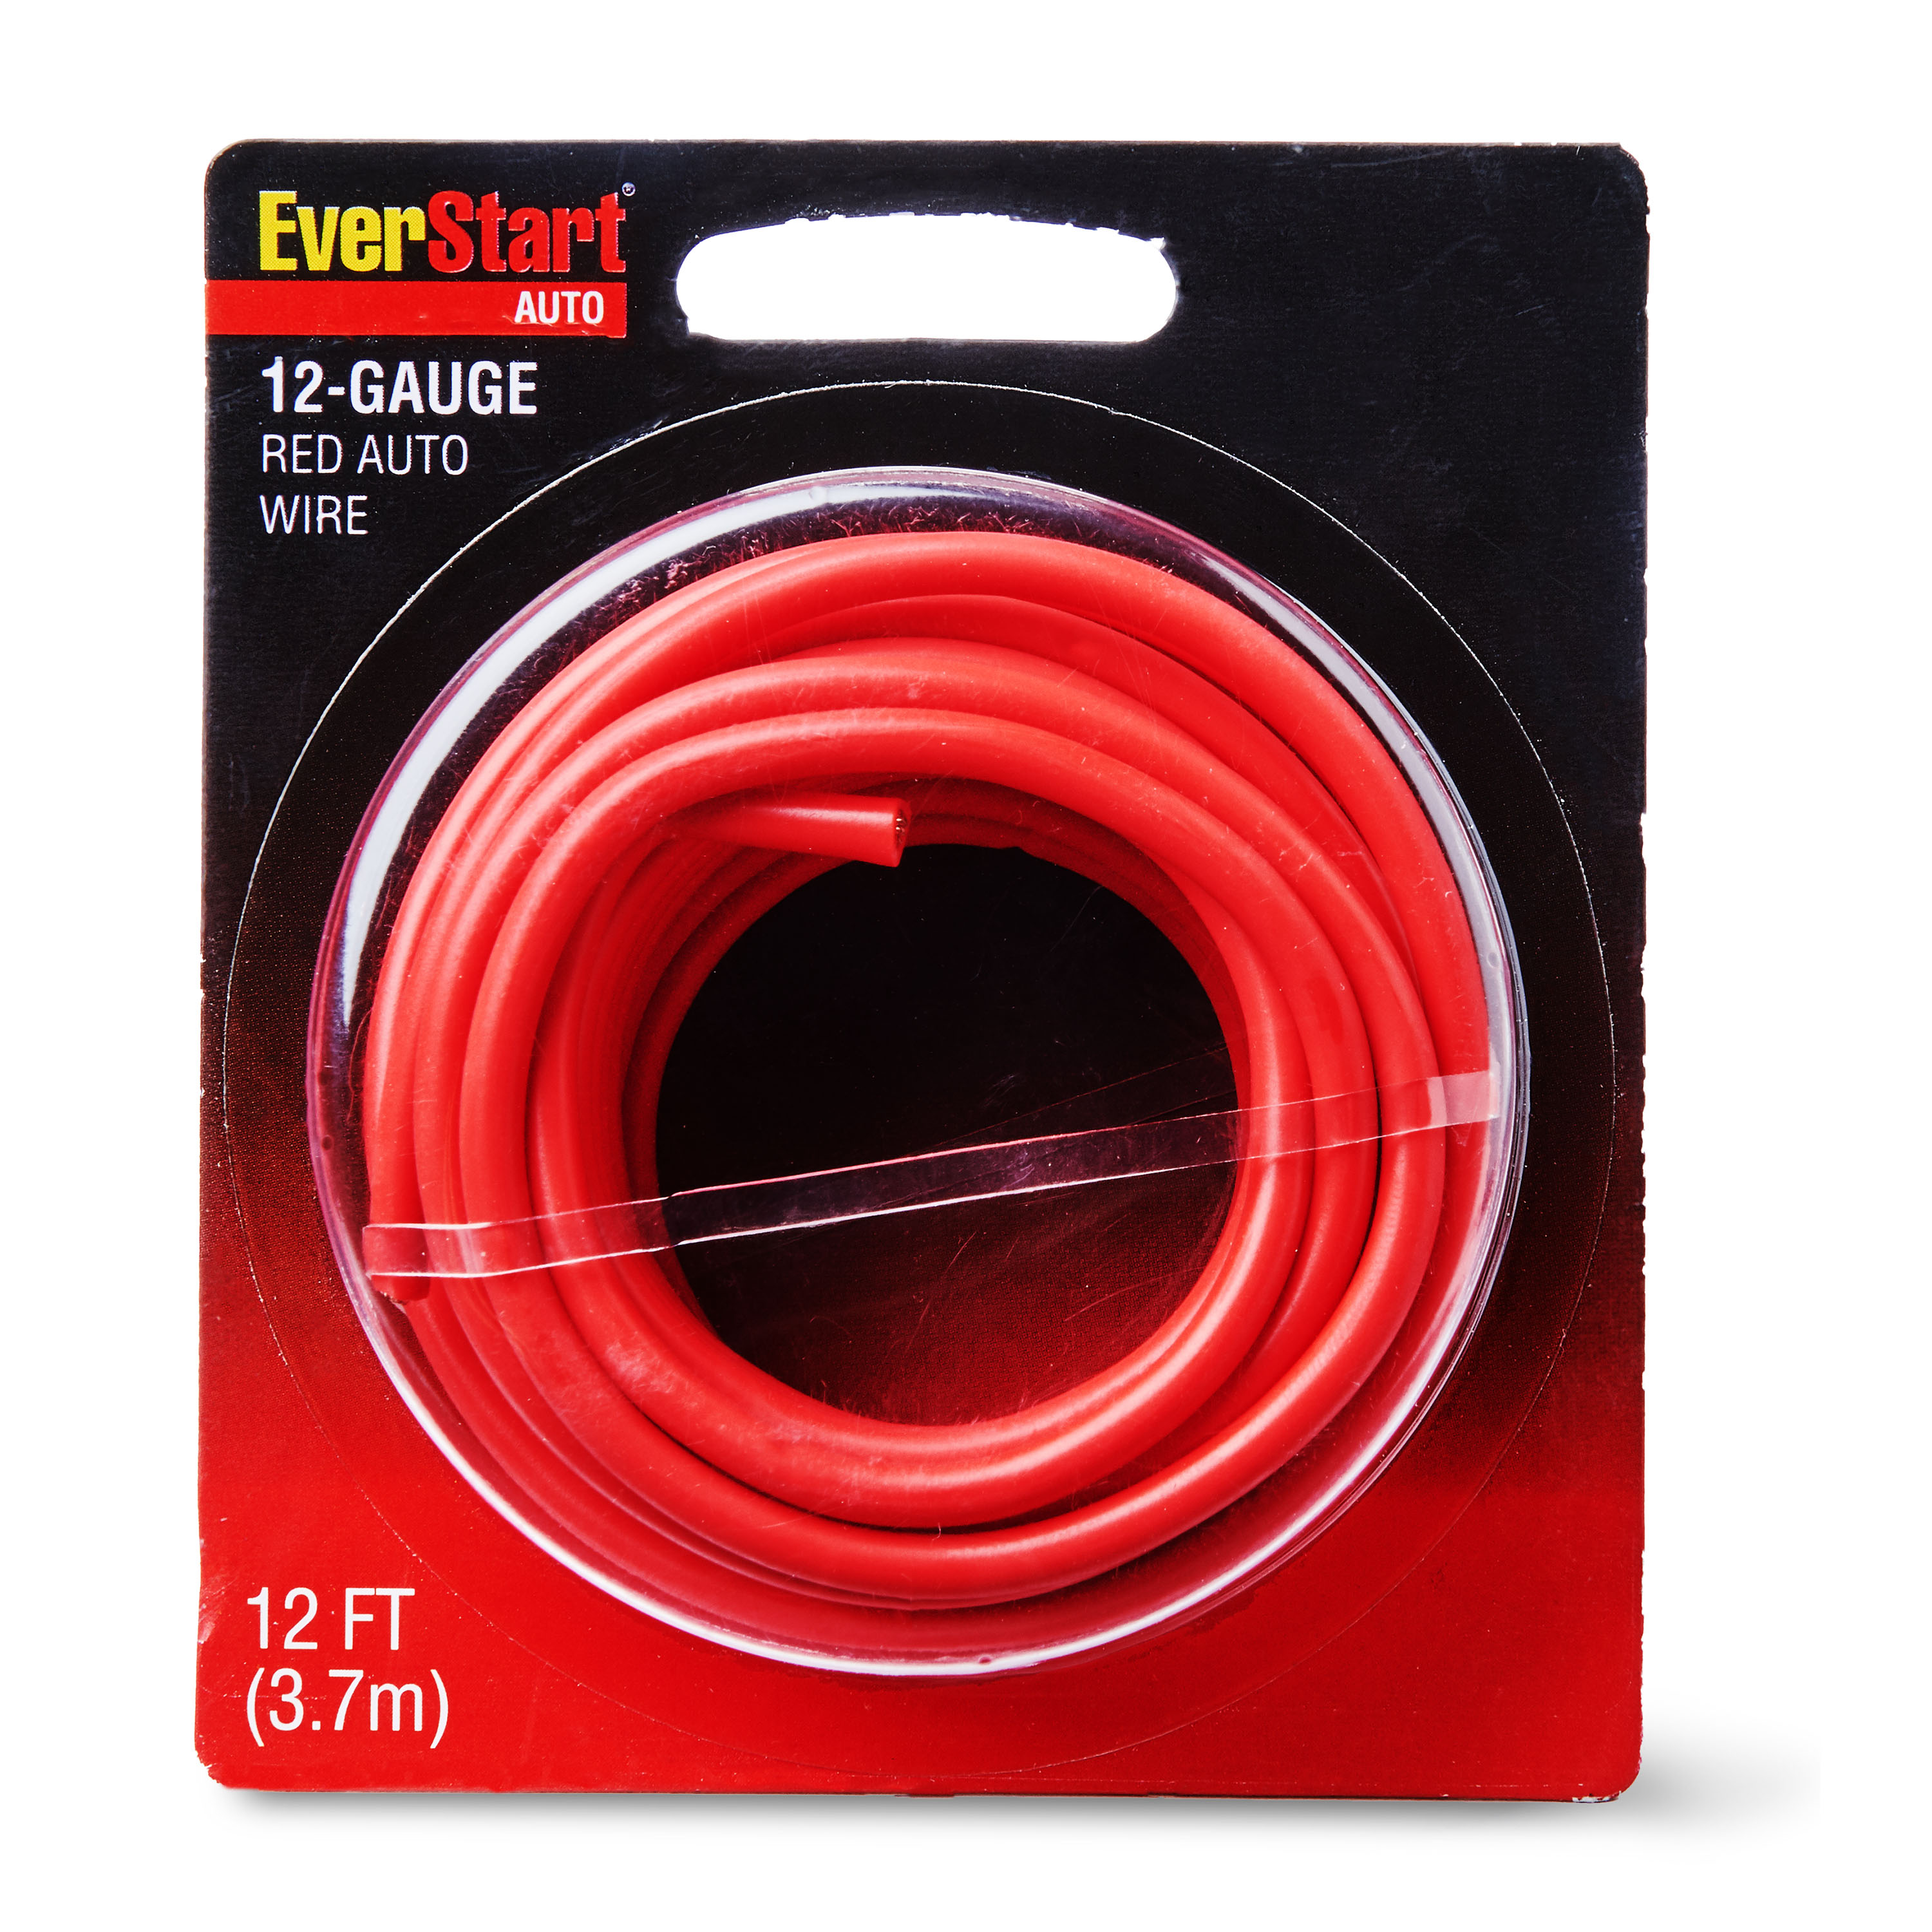 EverStart 12-Gauge Auto Wire, Red Wire, 12 Feet, Light Swith to Fuse Block or Relay for Car.